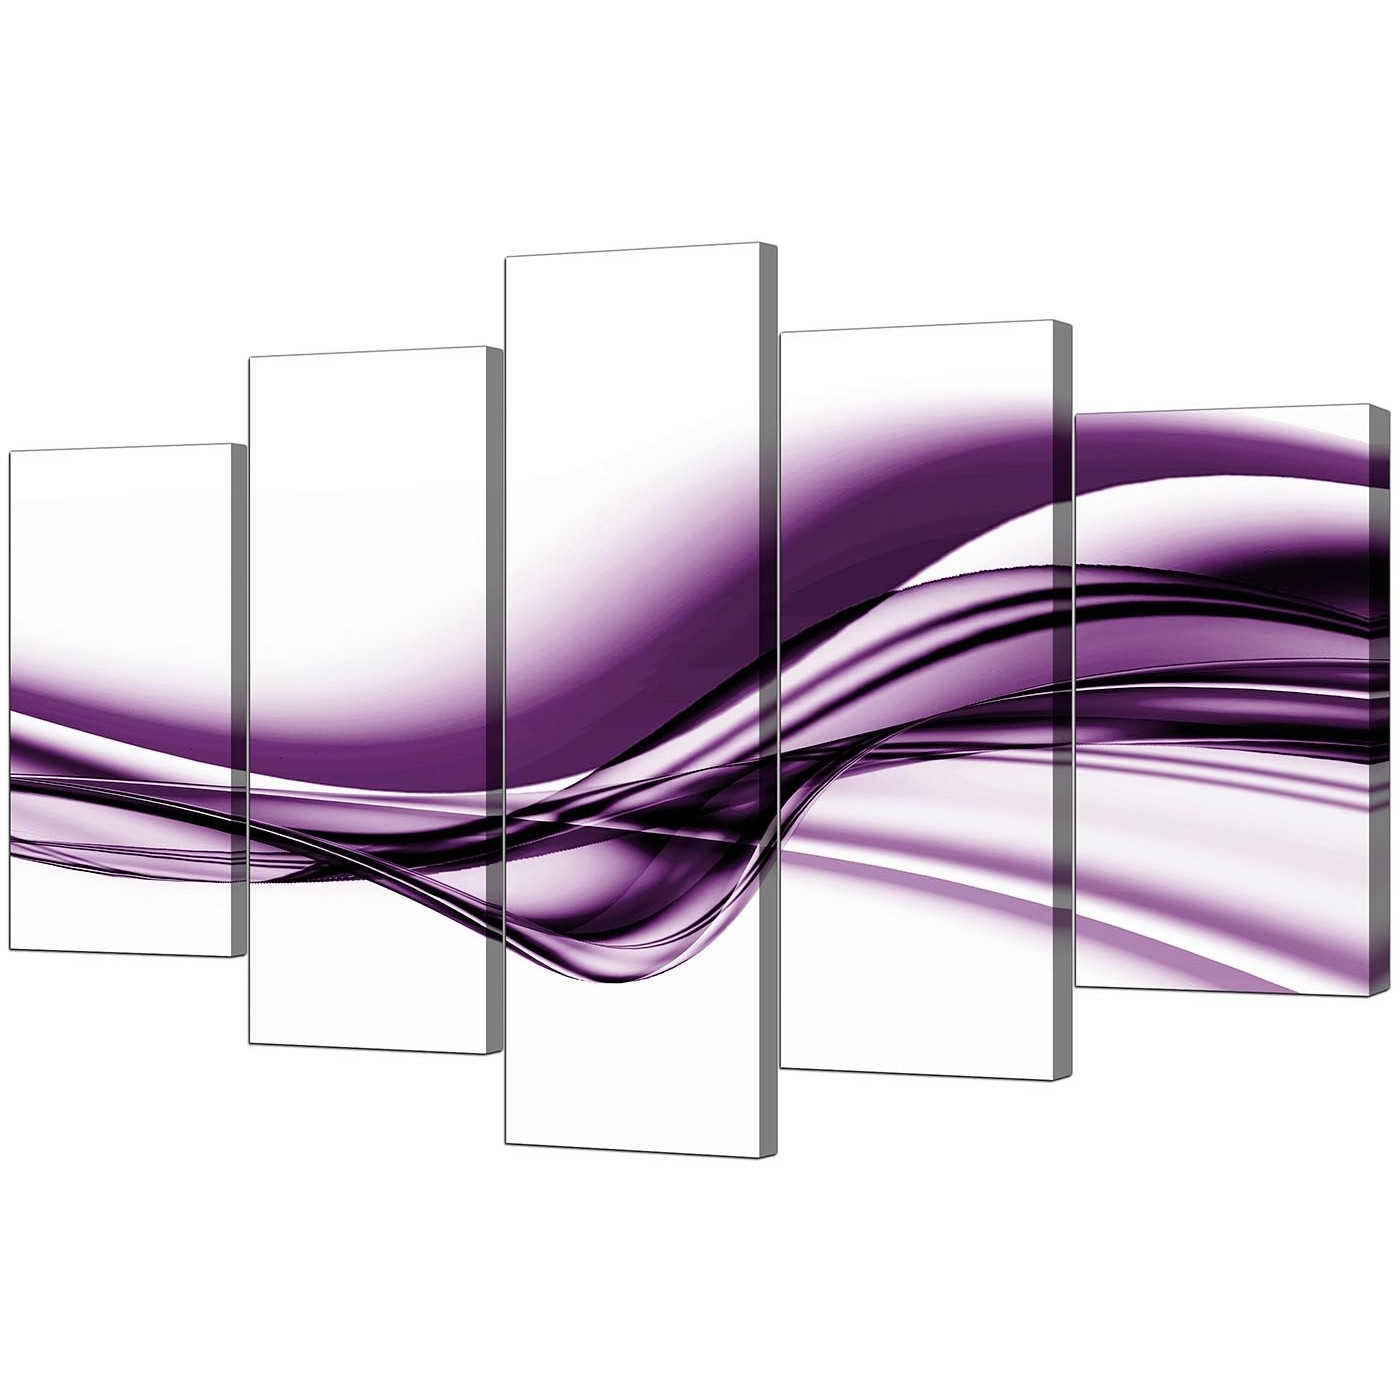 Extra Large Purple Abstract Canvas Prints – 5 Piece With Regard To Most Recently Released Extra Large Abstract Wall Art (View 5 of 15)